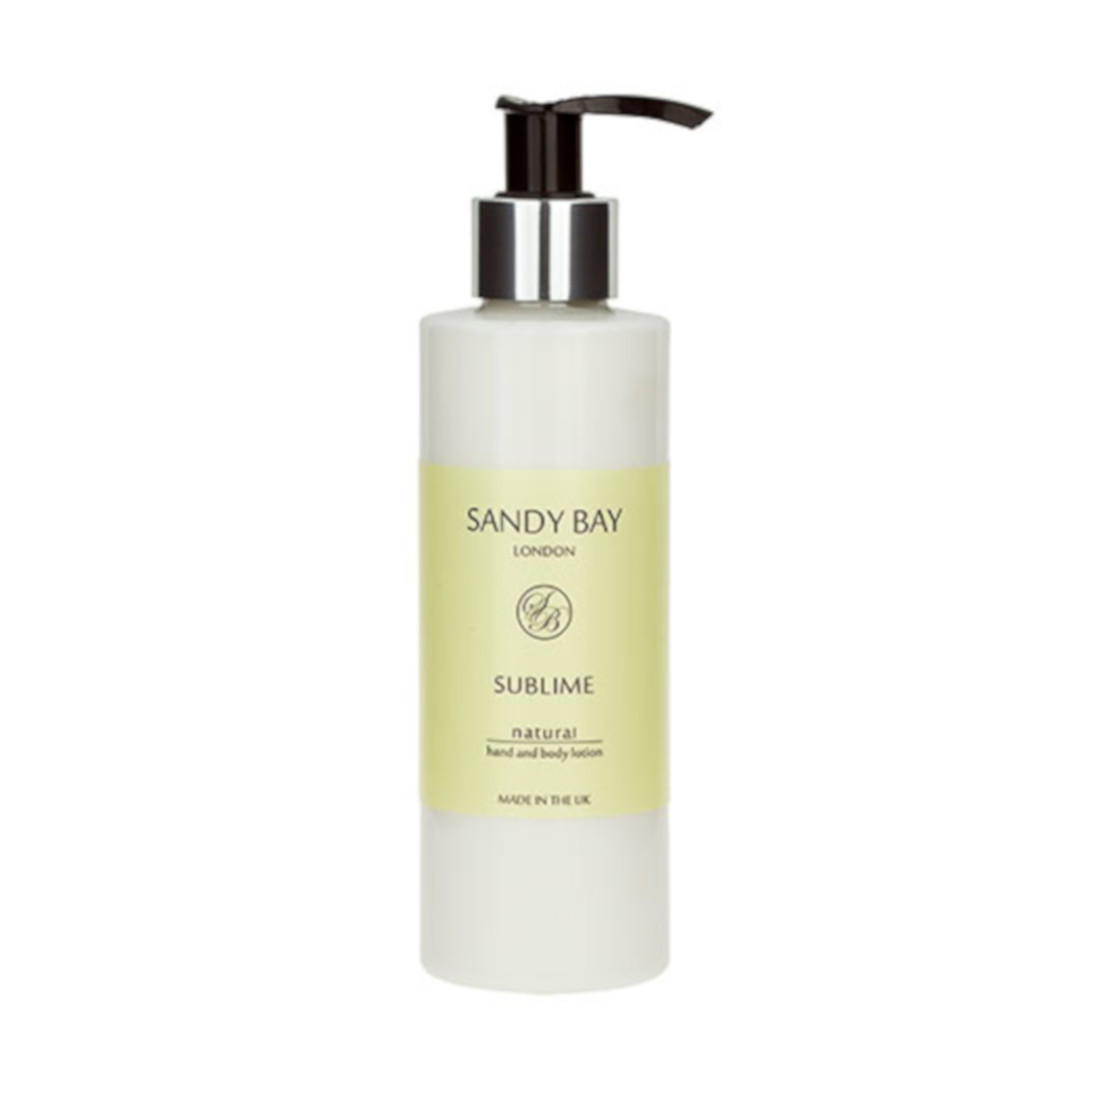 Sandy Bay Sublime 200ml Hand & Body Lotion